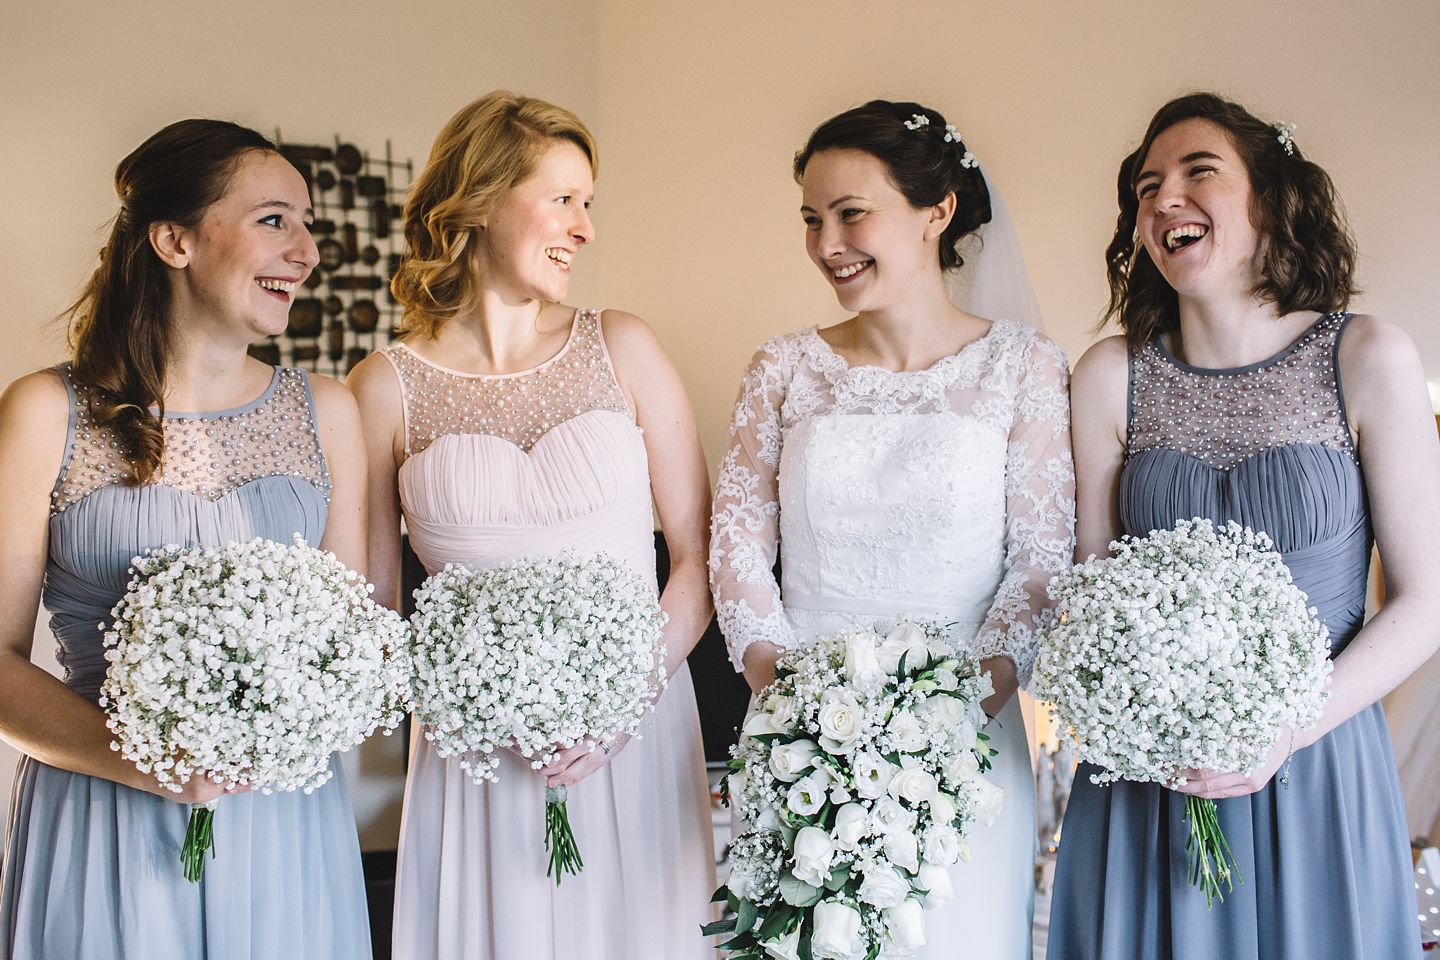 winter-bridesmaids-wedding-photography-vanessa-adams